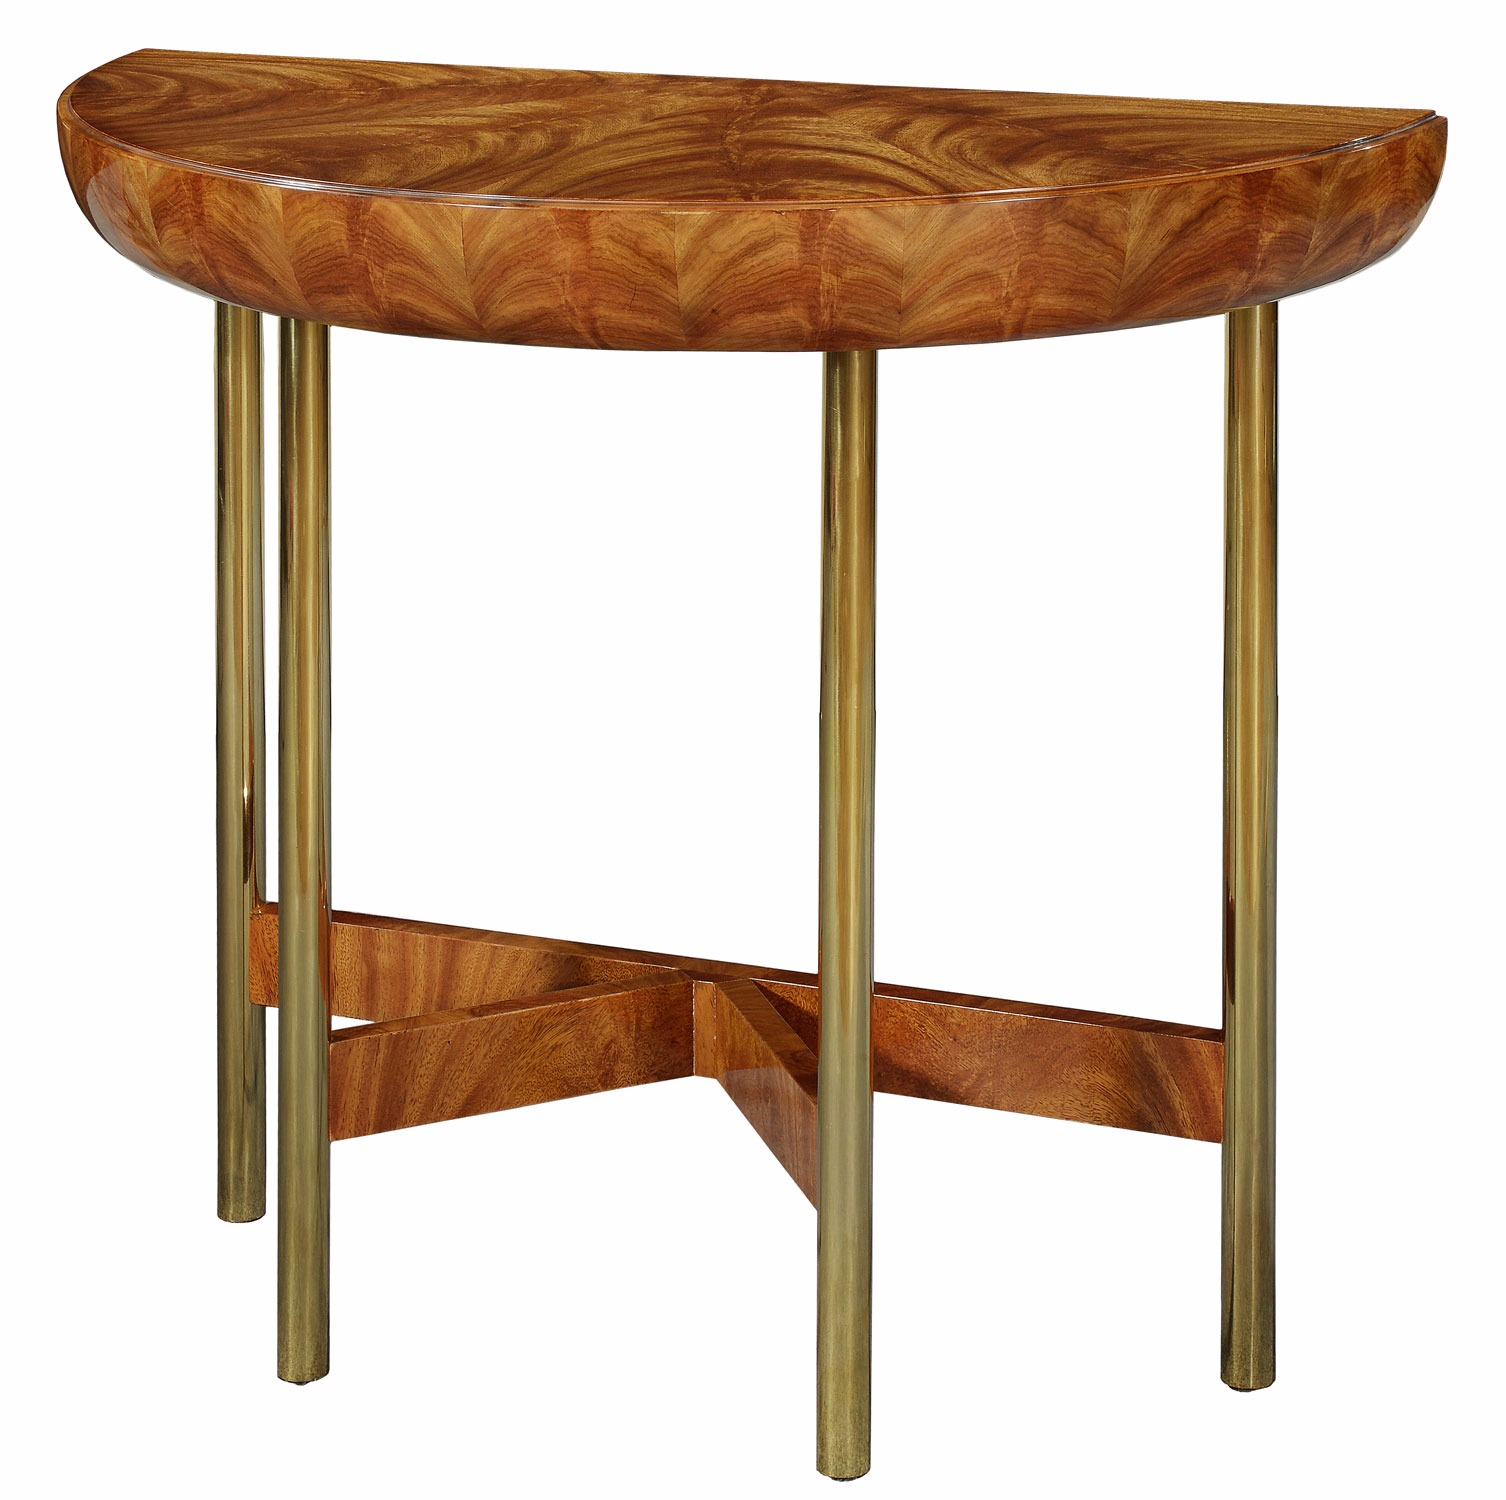 Rex limited edition Art Deco style demi-lune console table